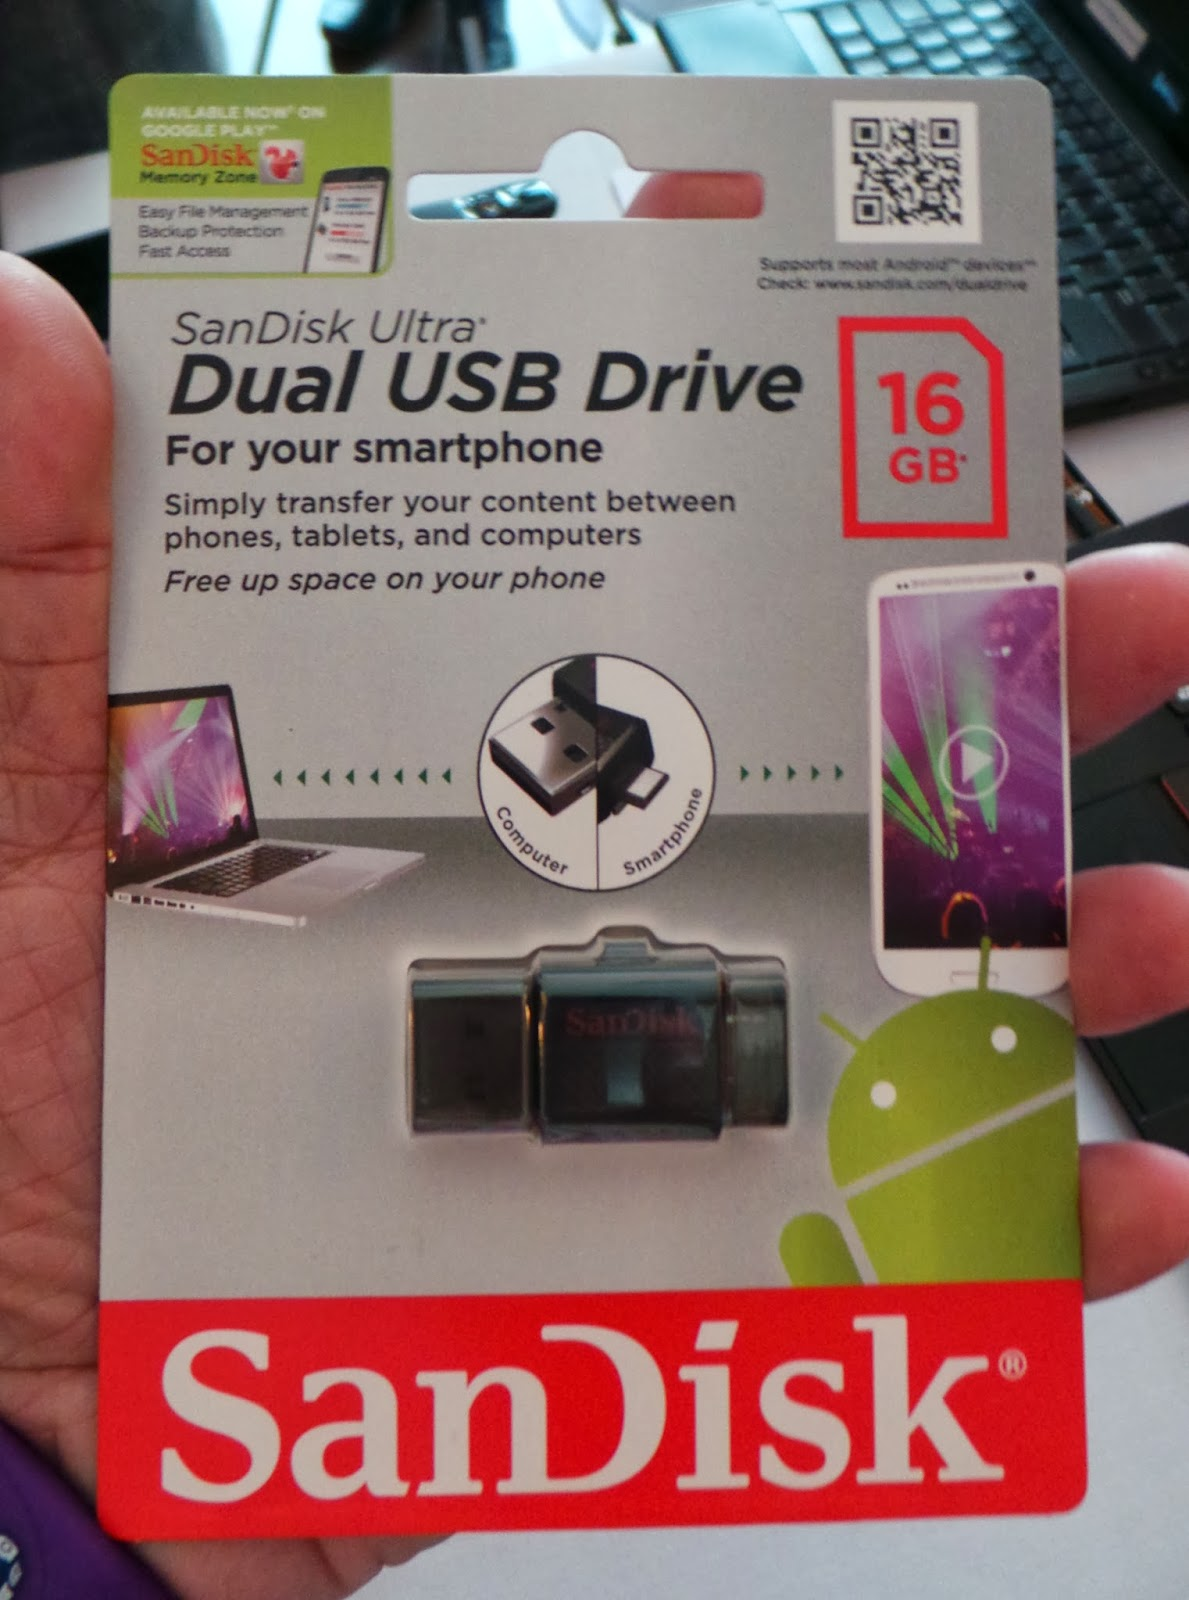 Sandisk Announces Ultra Dual Usb Drive 30 With Microusb And Sddd2 128gb Launches A That Can Be Used On Smartphones Tablets Allows Users To Easily Store Or Backup Data Free Up Space